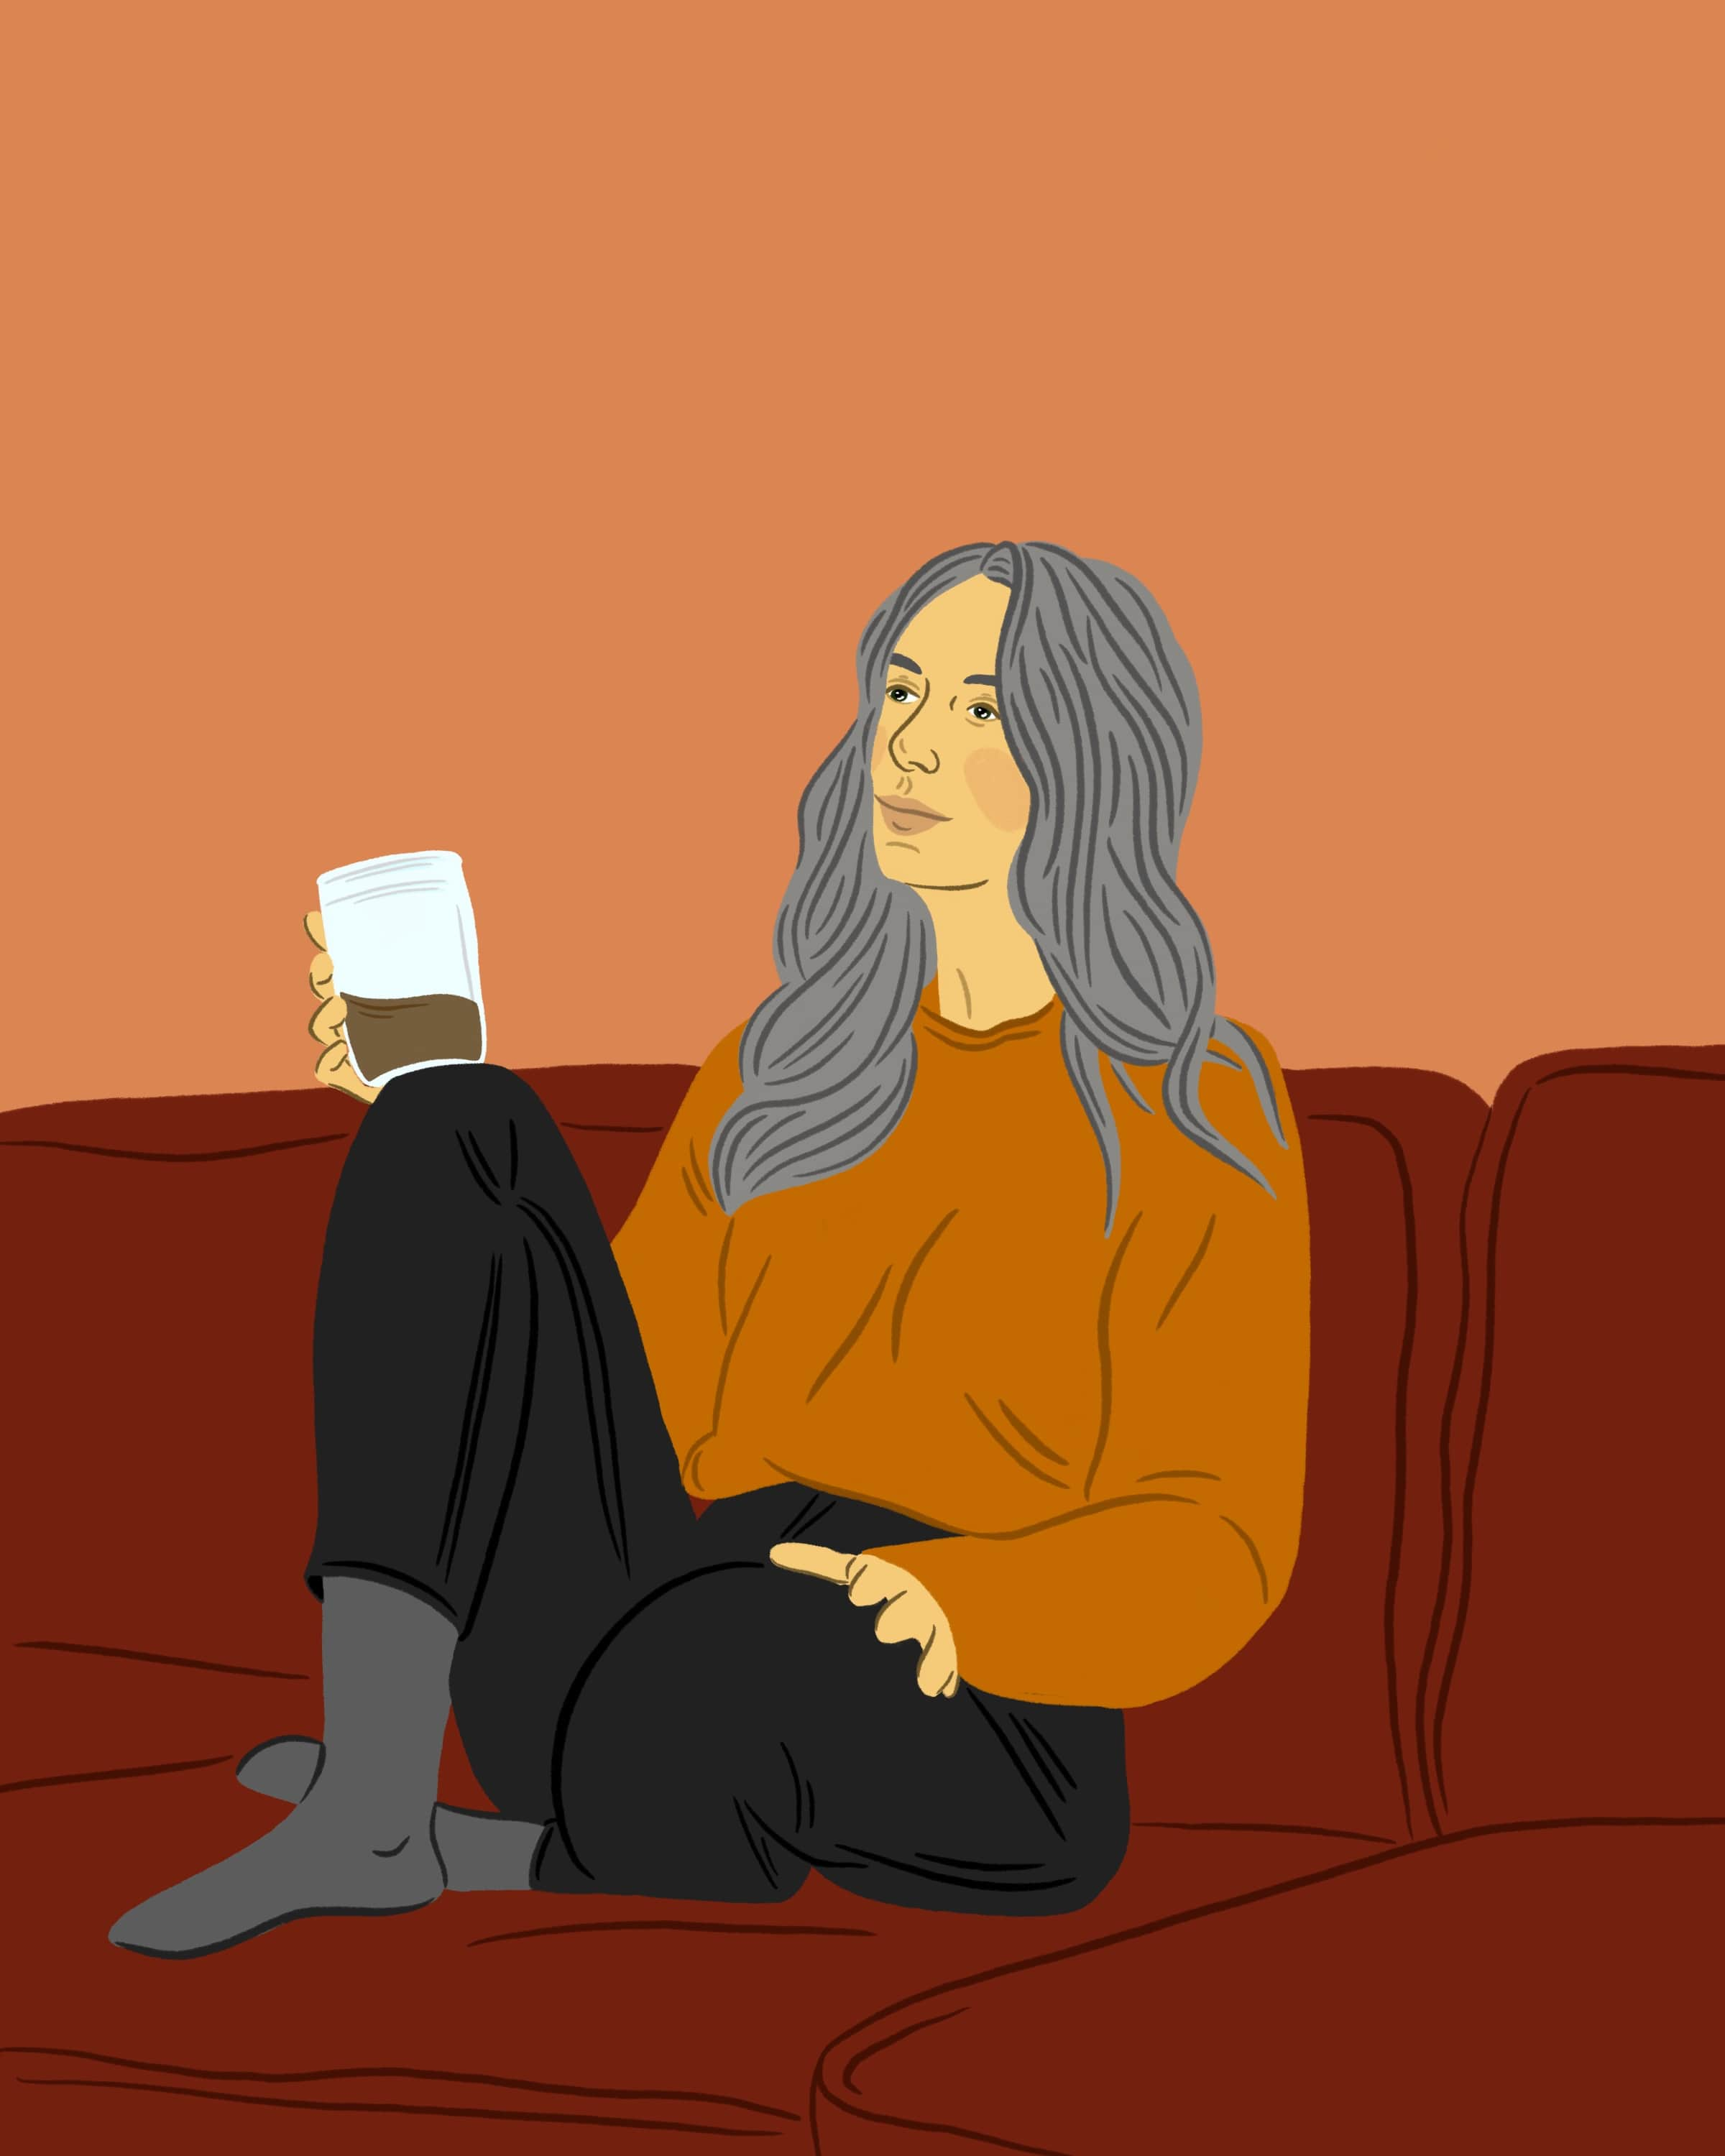 Illustration of a girl, sitting on her couch, drinking a coffee.